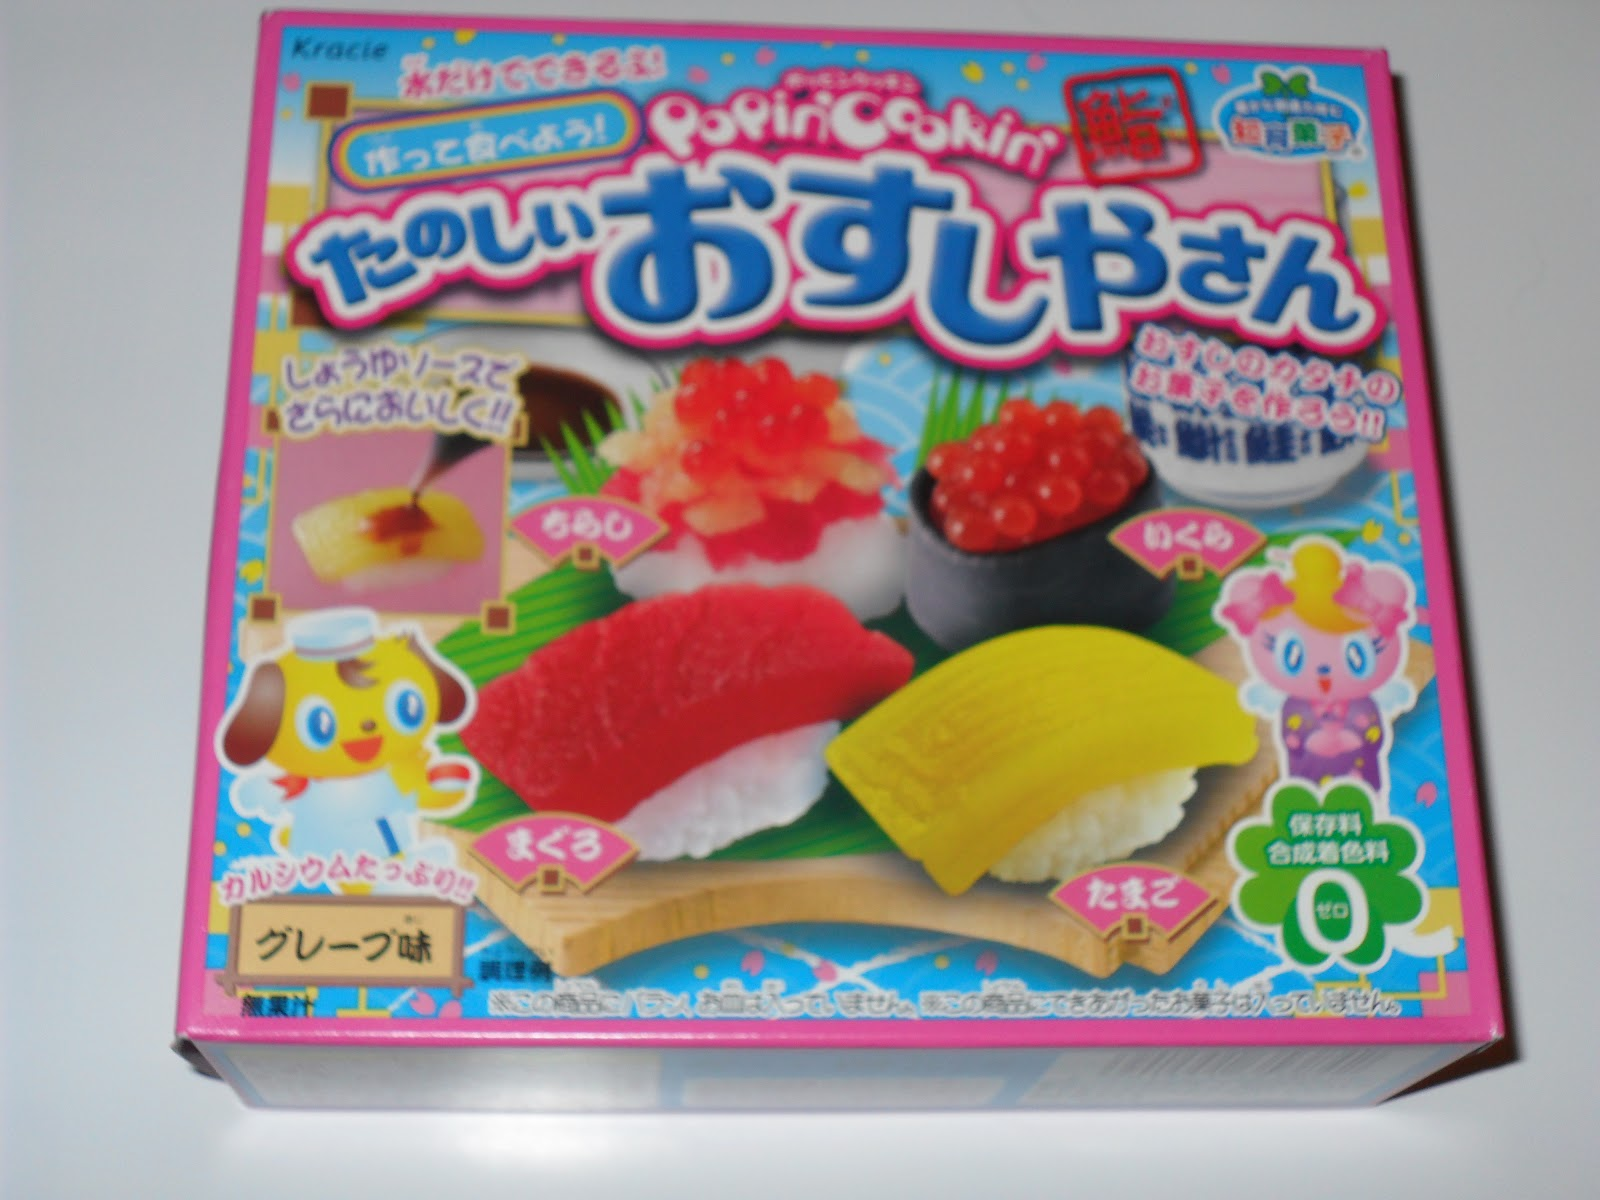 how to make japanese water candy